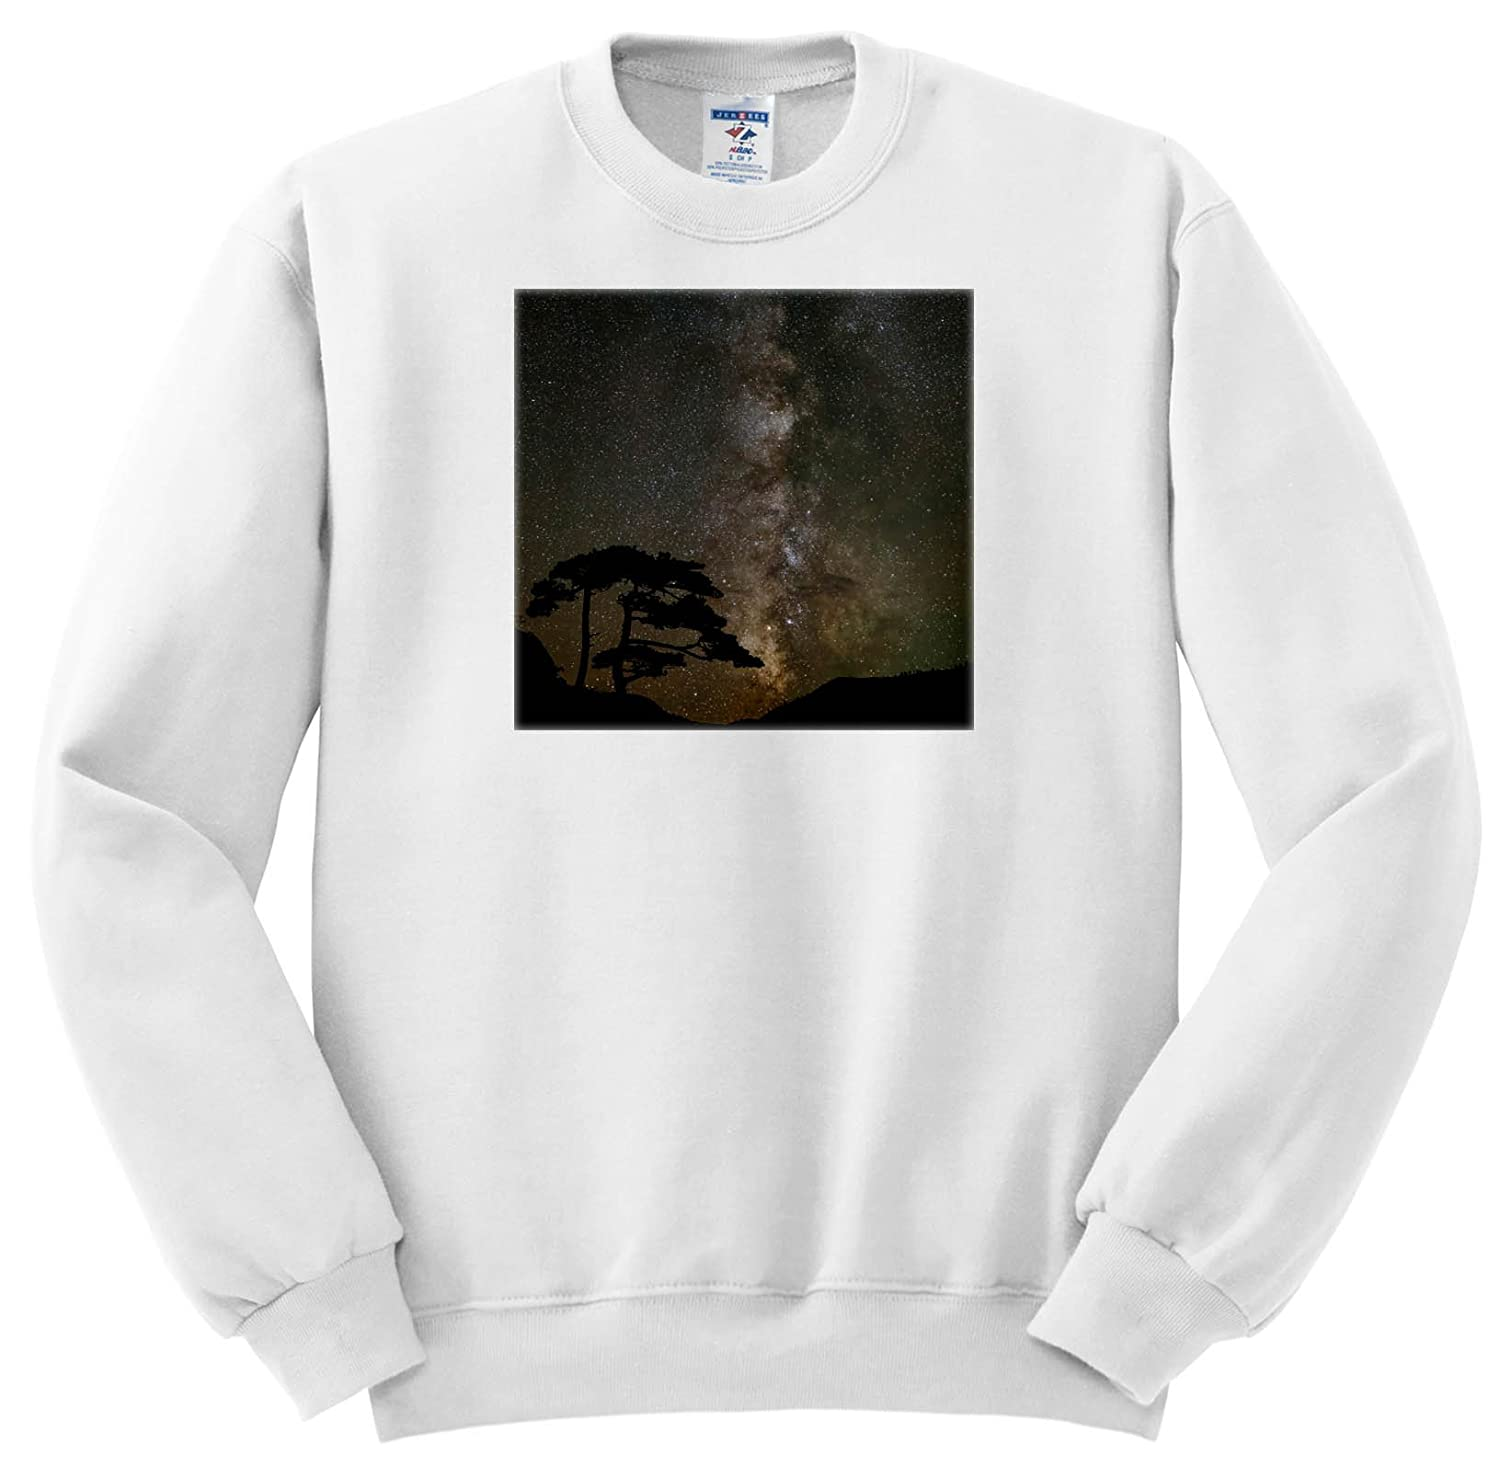 3dRose Danita Delimont - Milky Way - Milky Way and Silhouetted Tree, Near Ouray, Colorado - Sweatshirts ss_278693